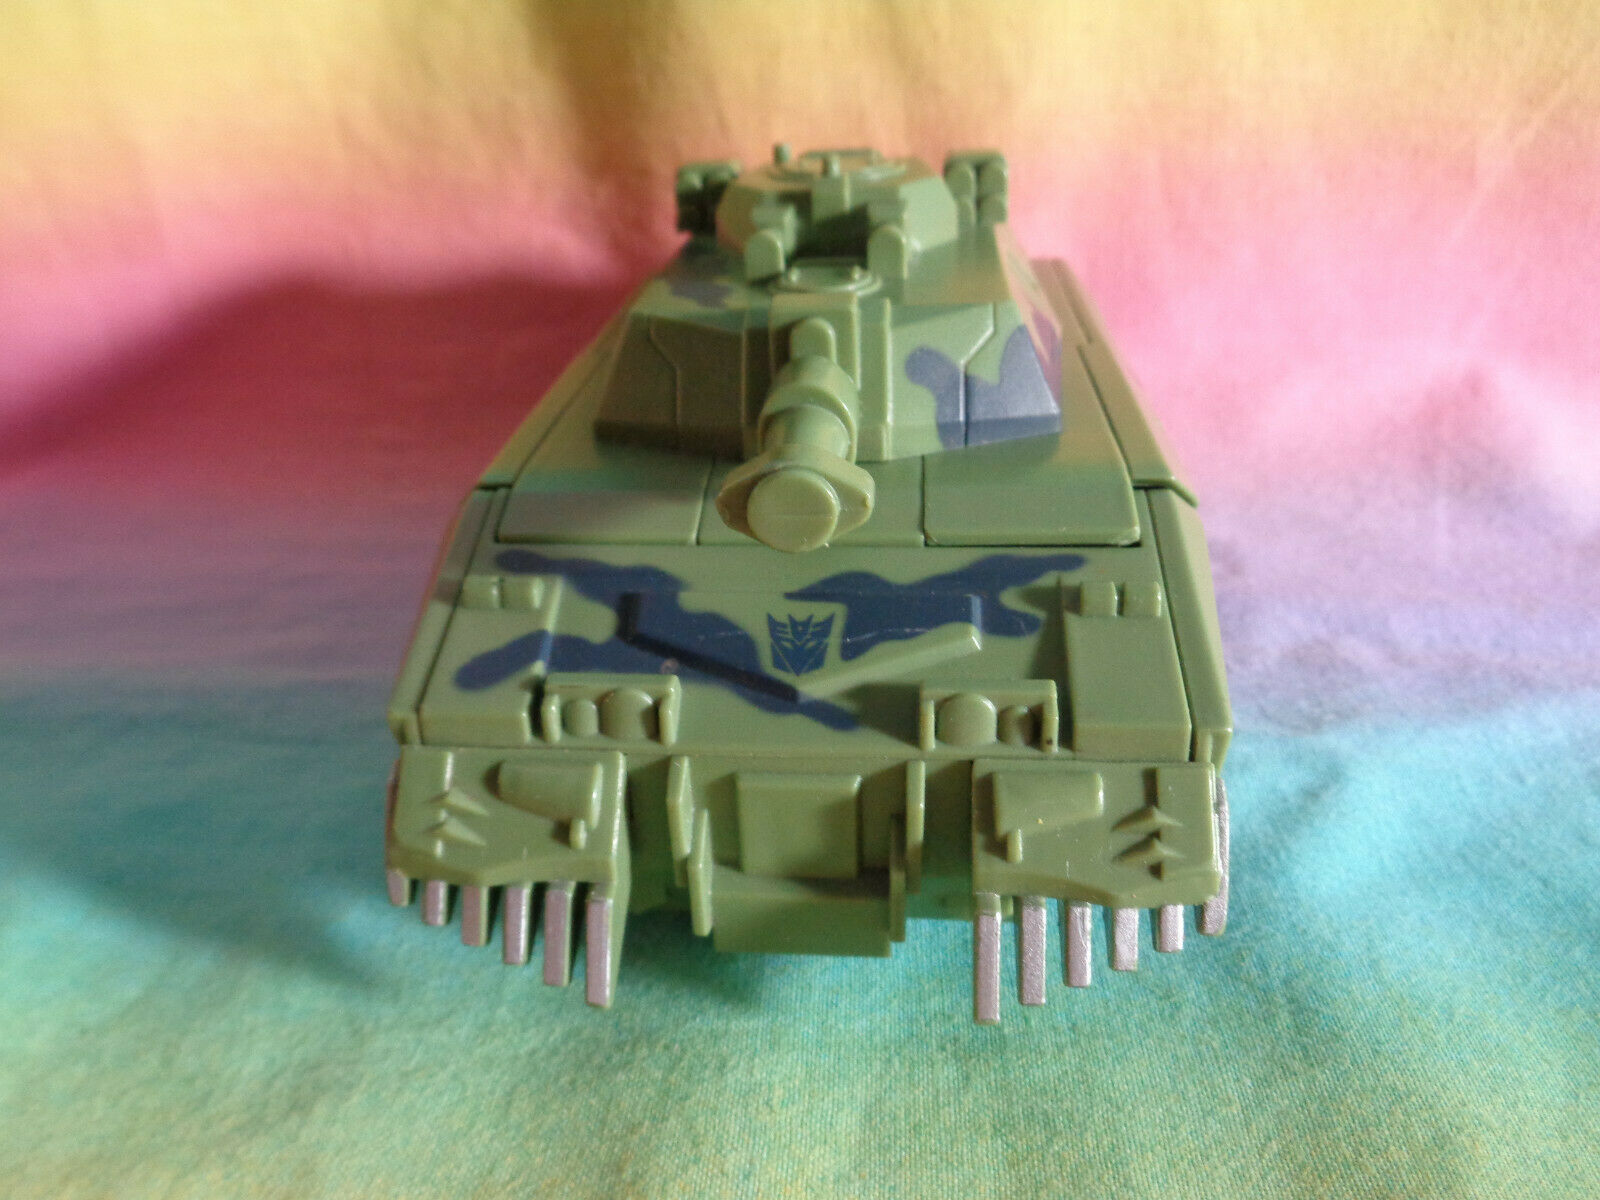 Transformers 2008 Hasbro Green Army Tank Replacement Parts - as is image 2